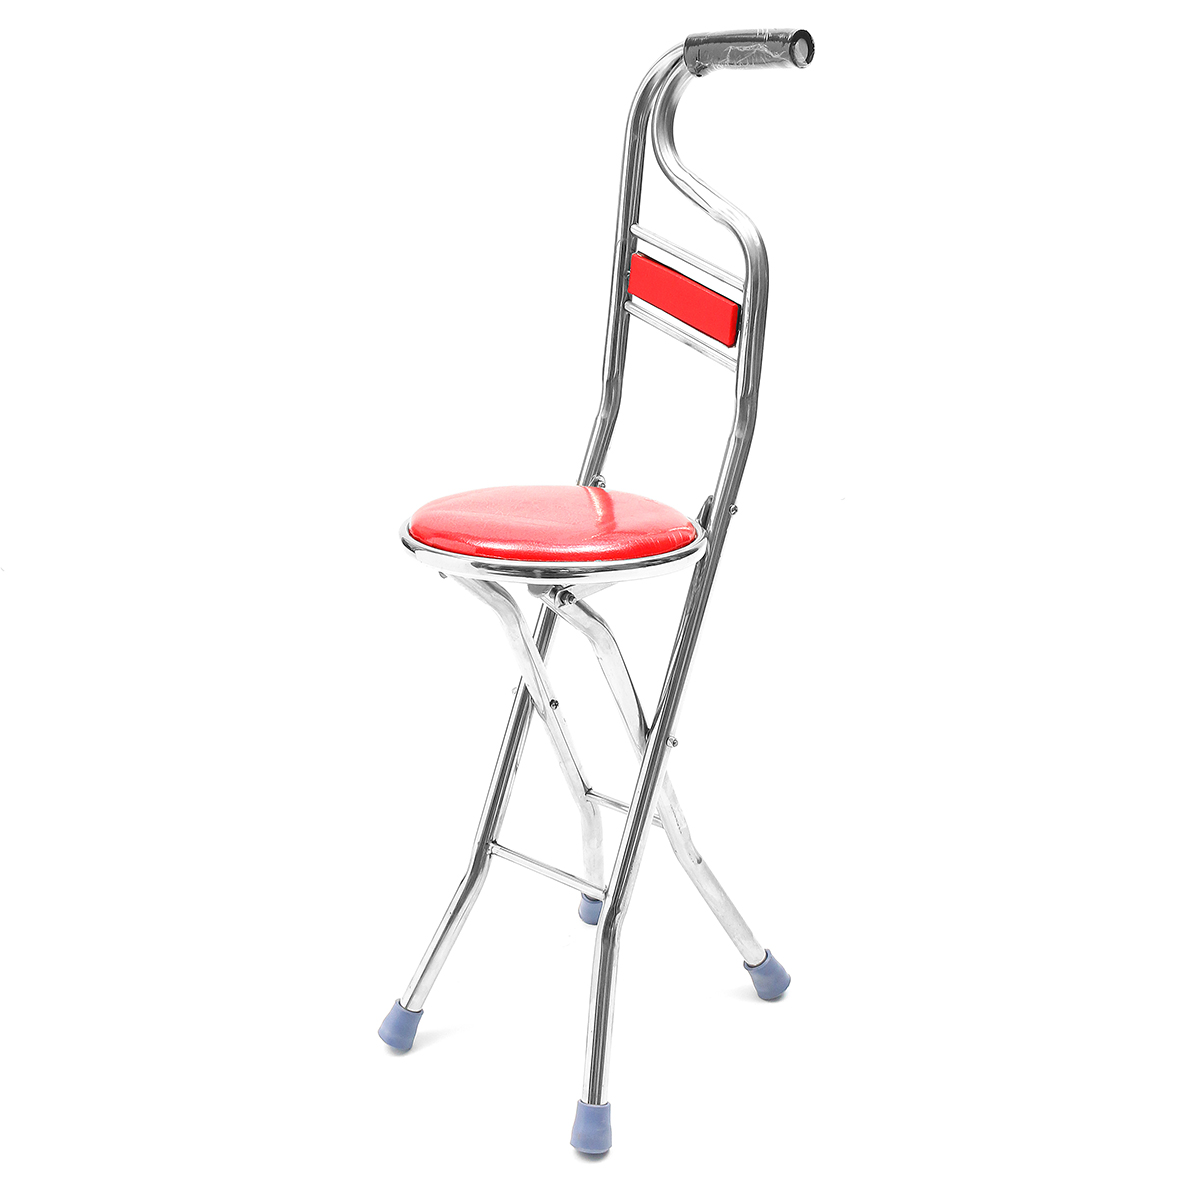 2 In 1 Walking Stick Chair Seat Adjustable Stainless Steel